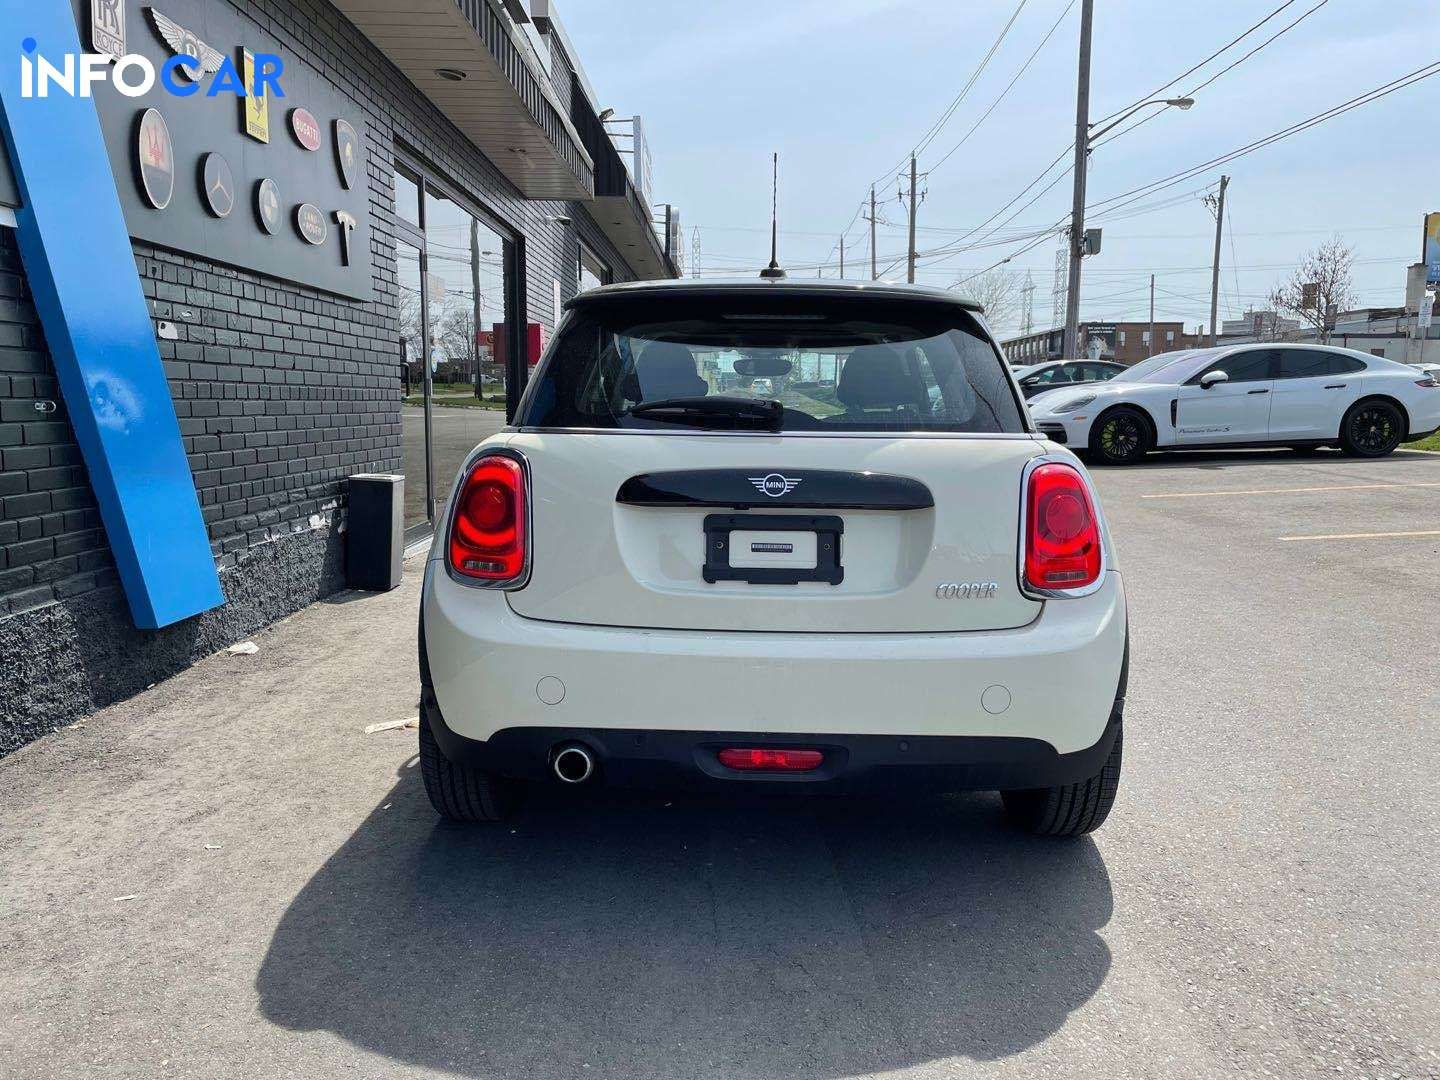 2021 MINI Cooper null - INFOCAR - Toronto's Most Comprehensive New and Used Auto Trading Platform